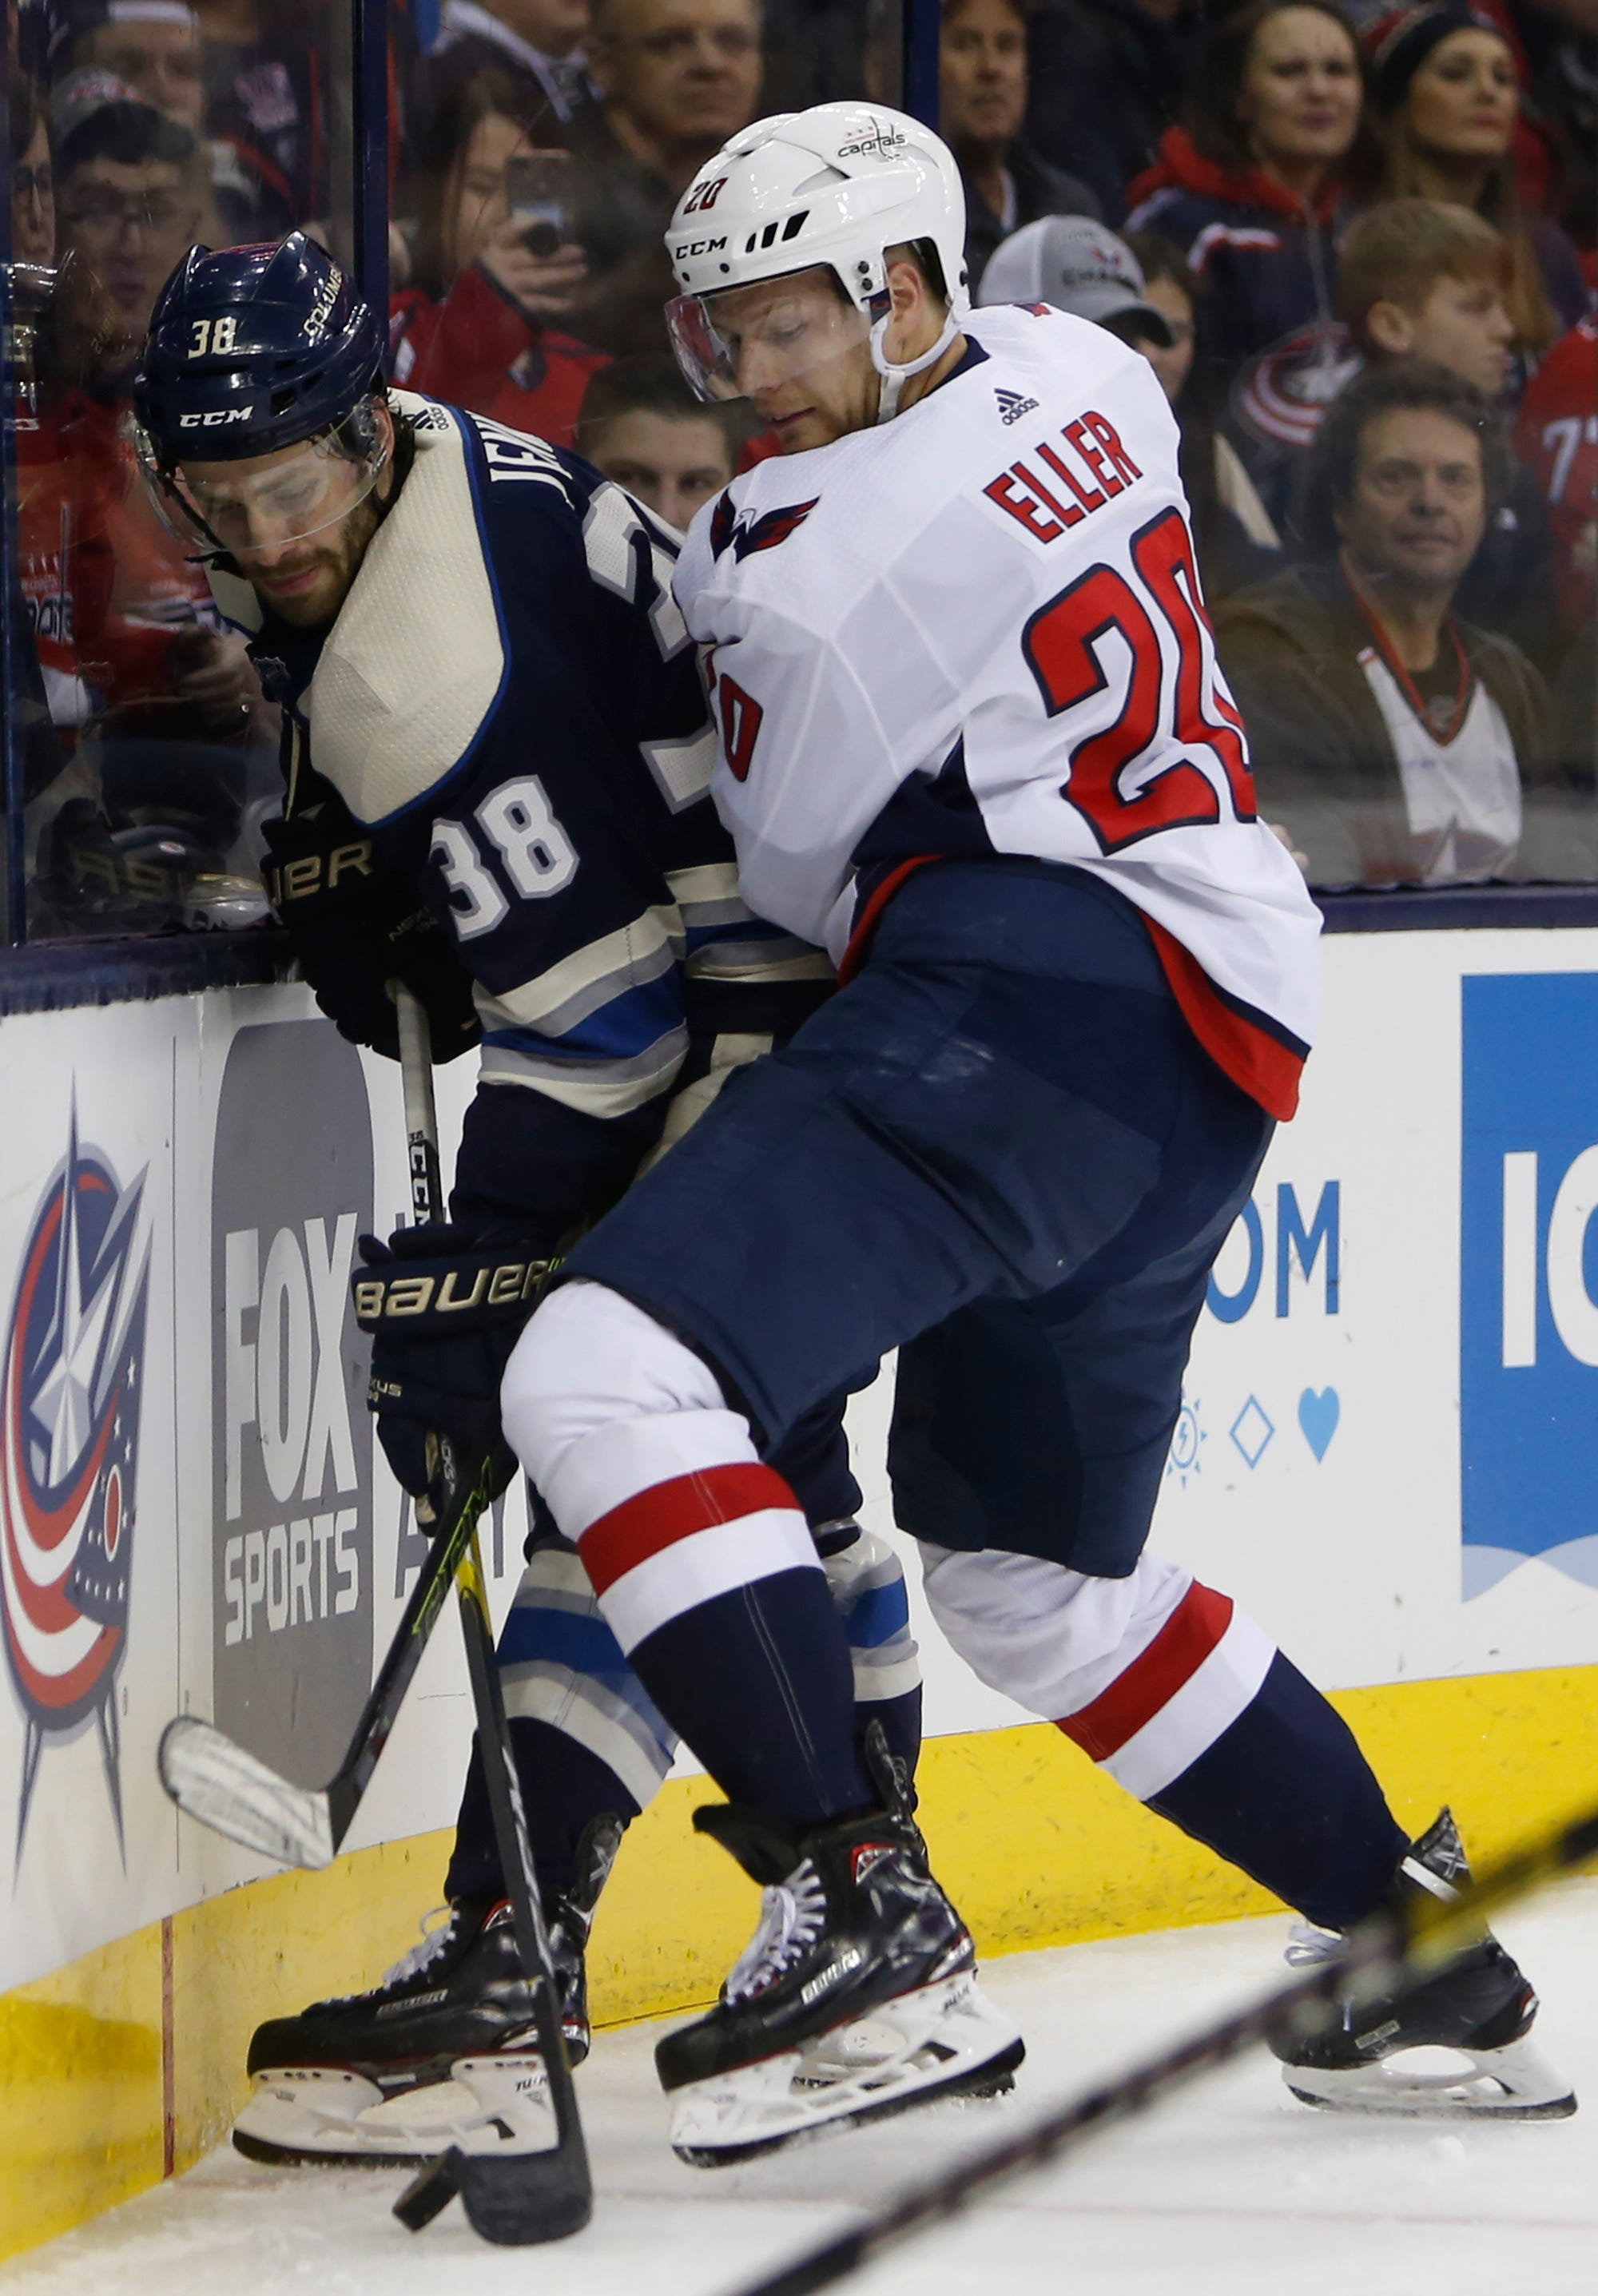 Bobrovsky, Blue Jackets shut out Capitals 3-0